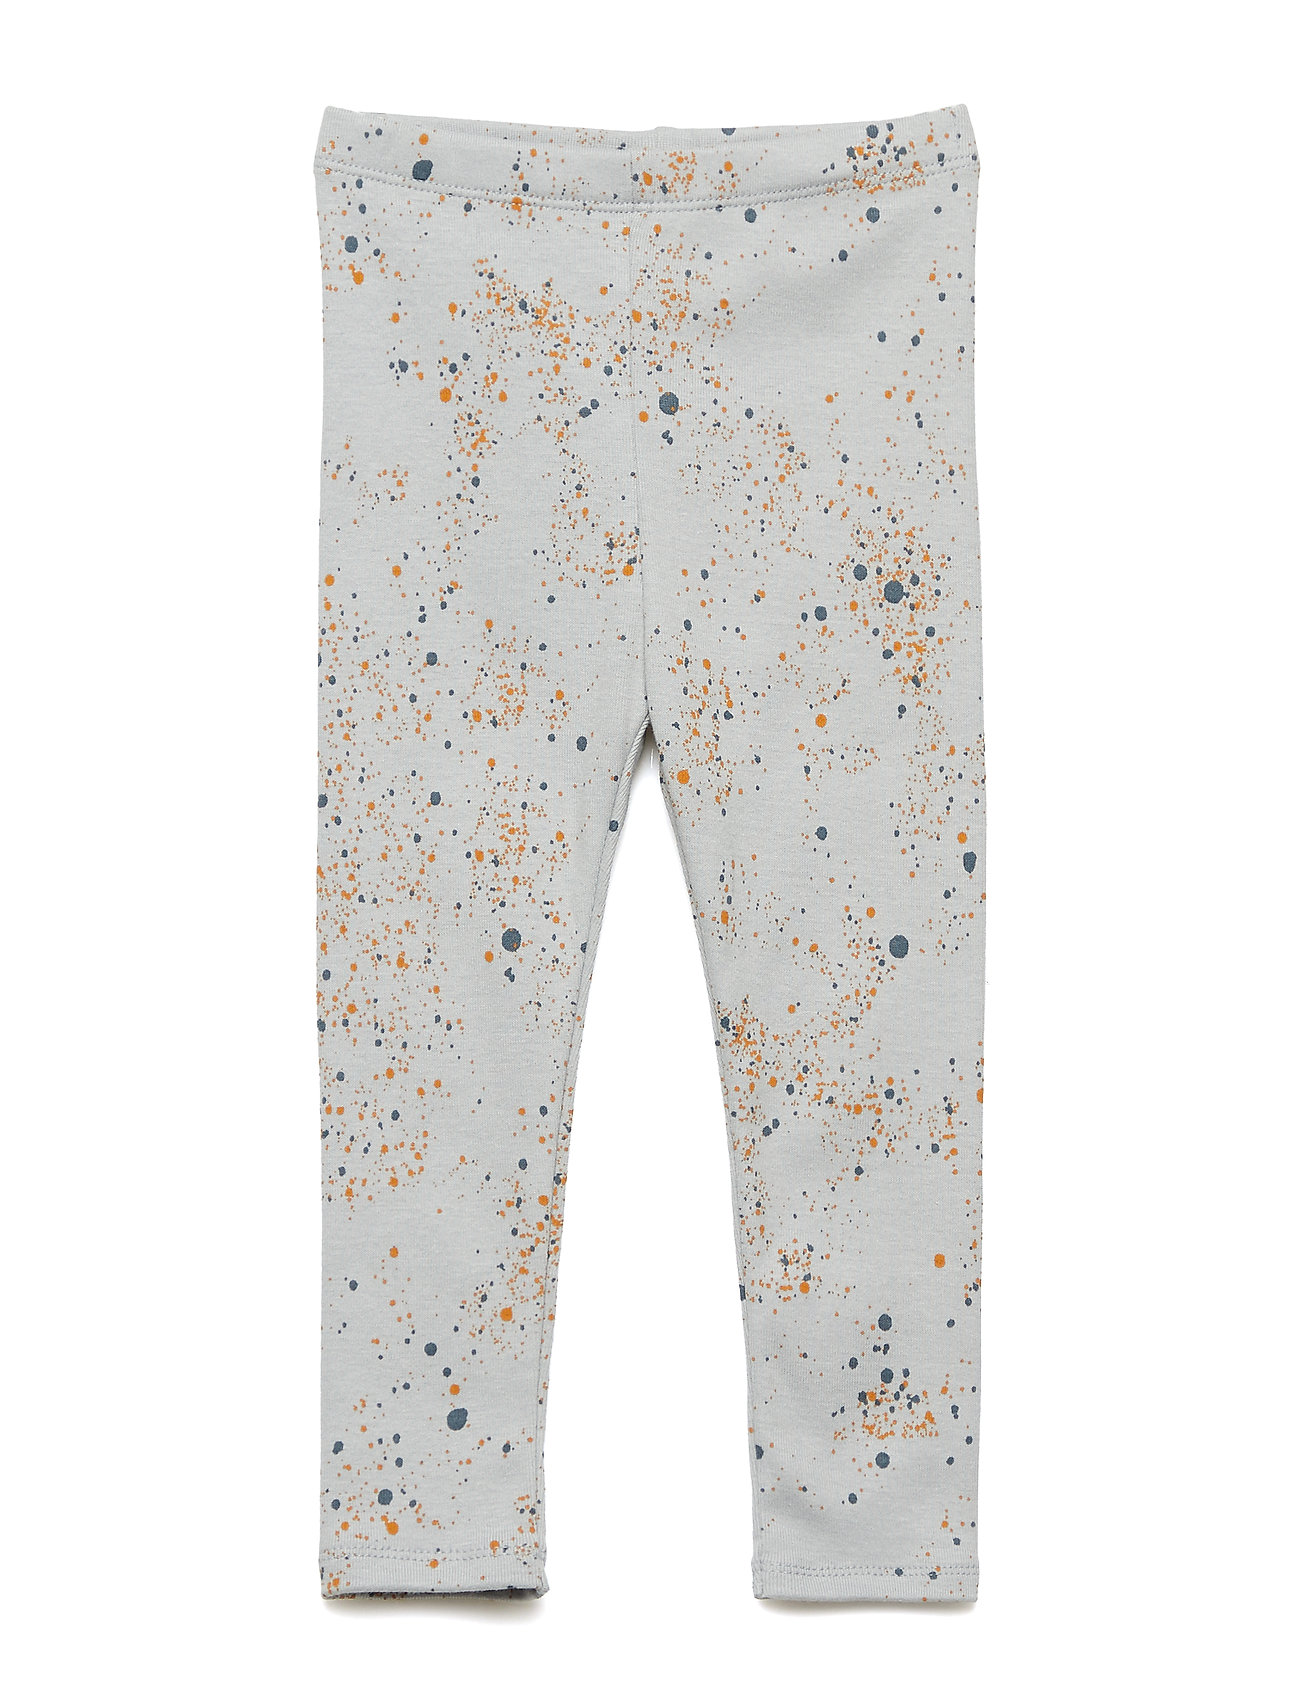 Soft Gallery Paula Baby Leggings - OCEAN GREY, AOP MINI SPLASH BLUE